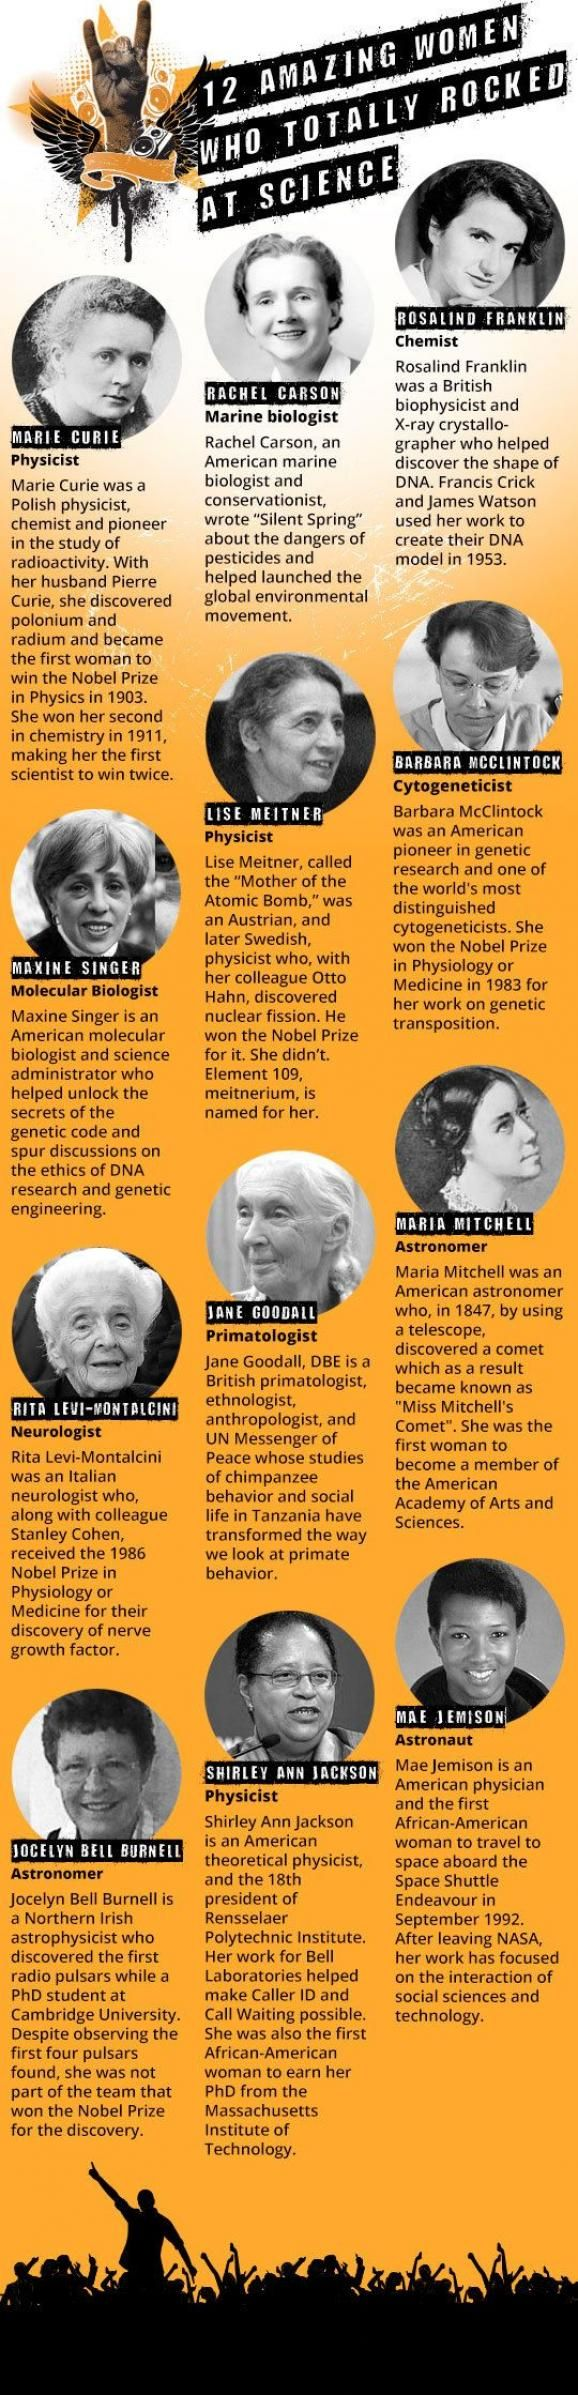 12 Amazing Women Who Totally Rocked at Science. Science classrooms need to  take a more active role in getting girls interested in science.